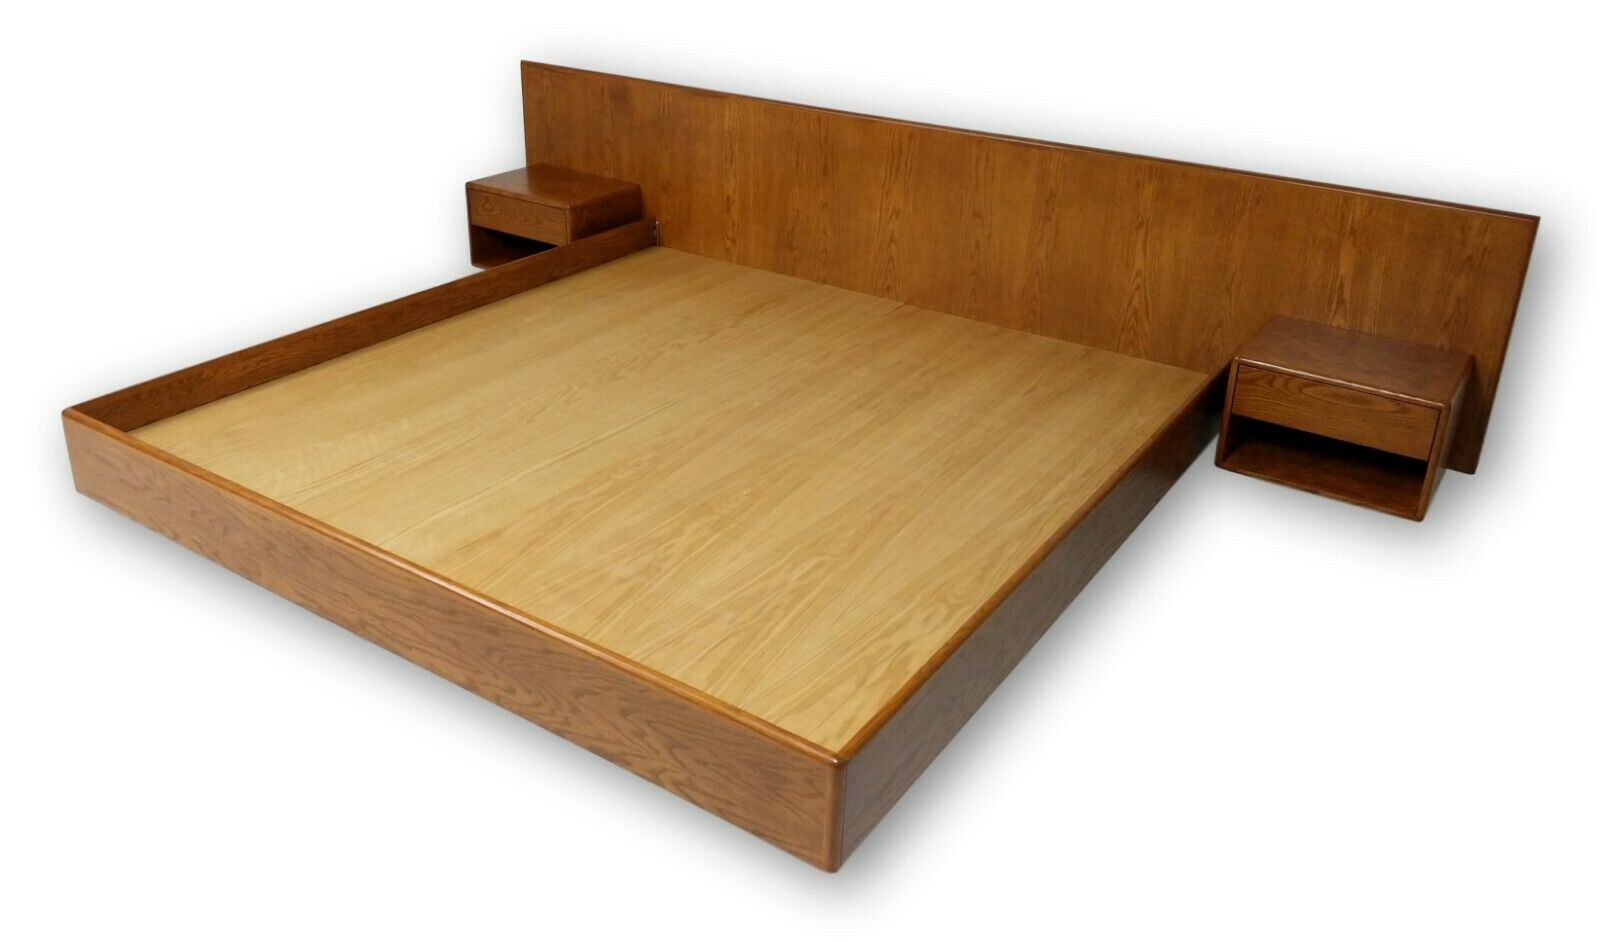 Photo New Hand crafted in USA, Danish inspired floating platform bed & nightstands MCM